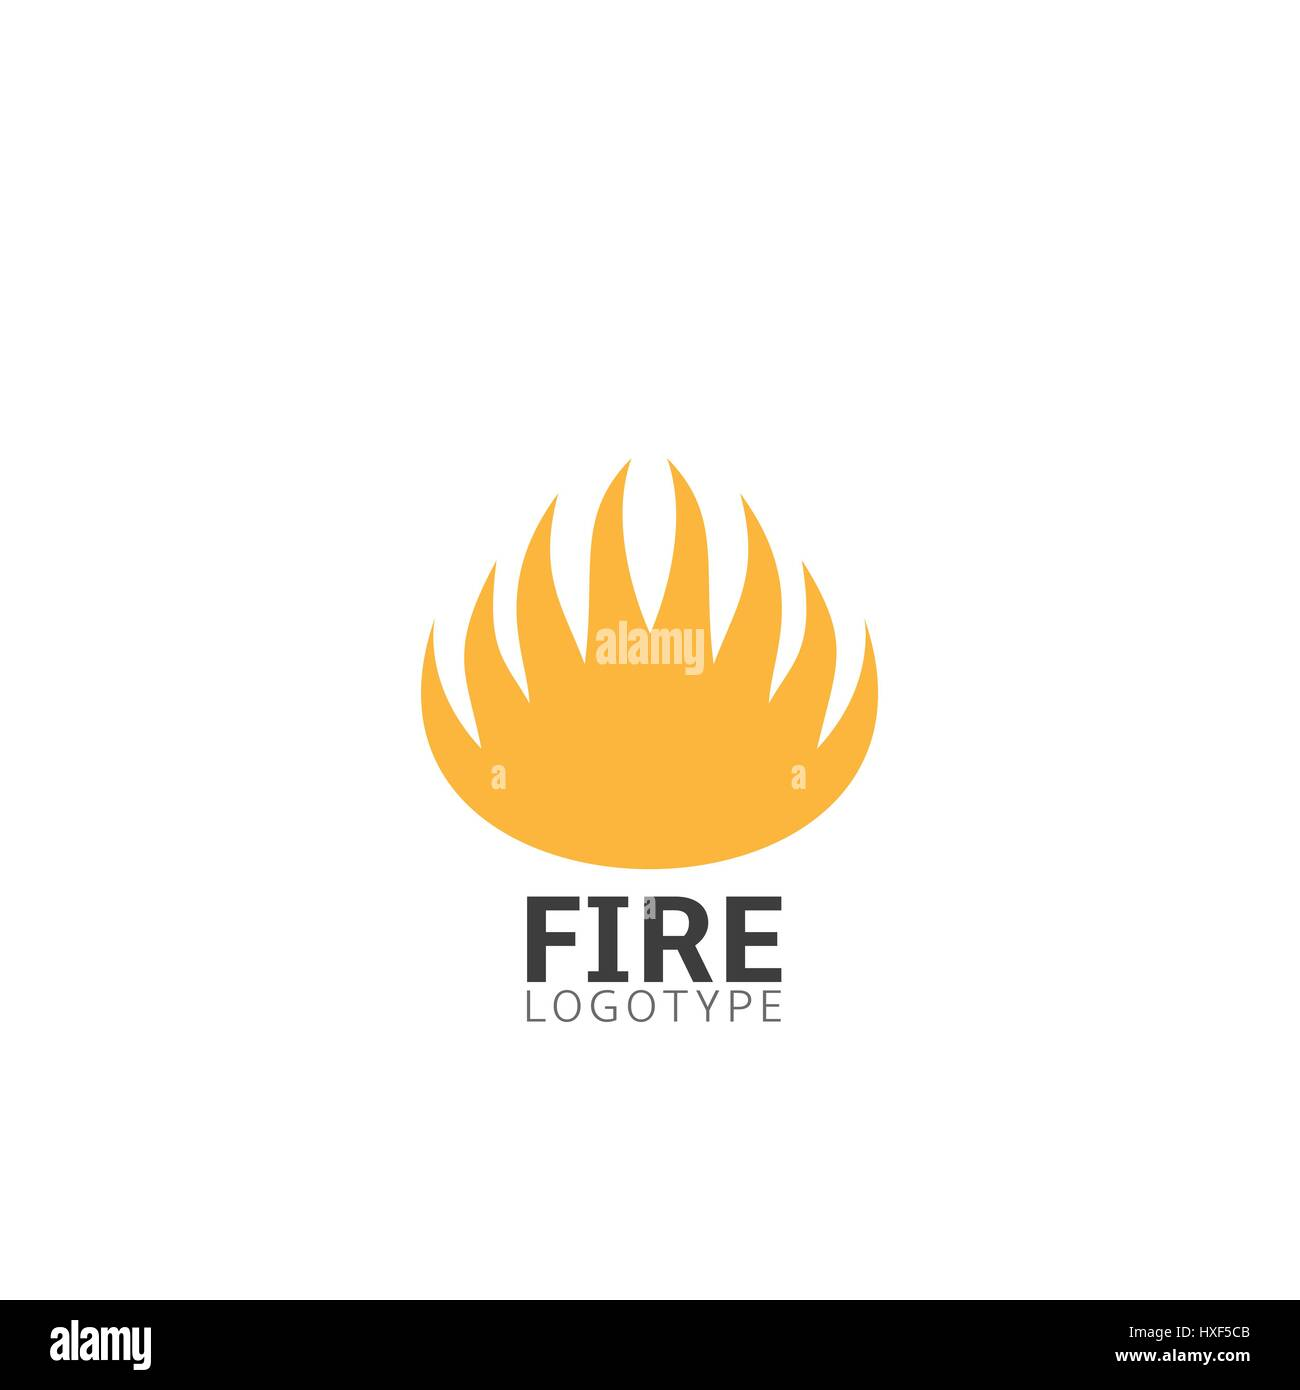 Fire logo sign - Stock Image